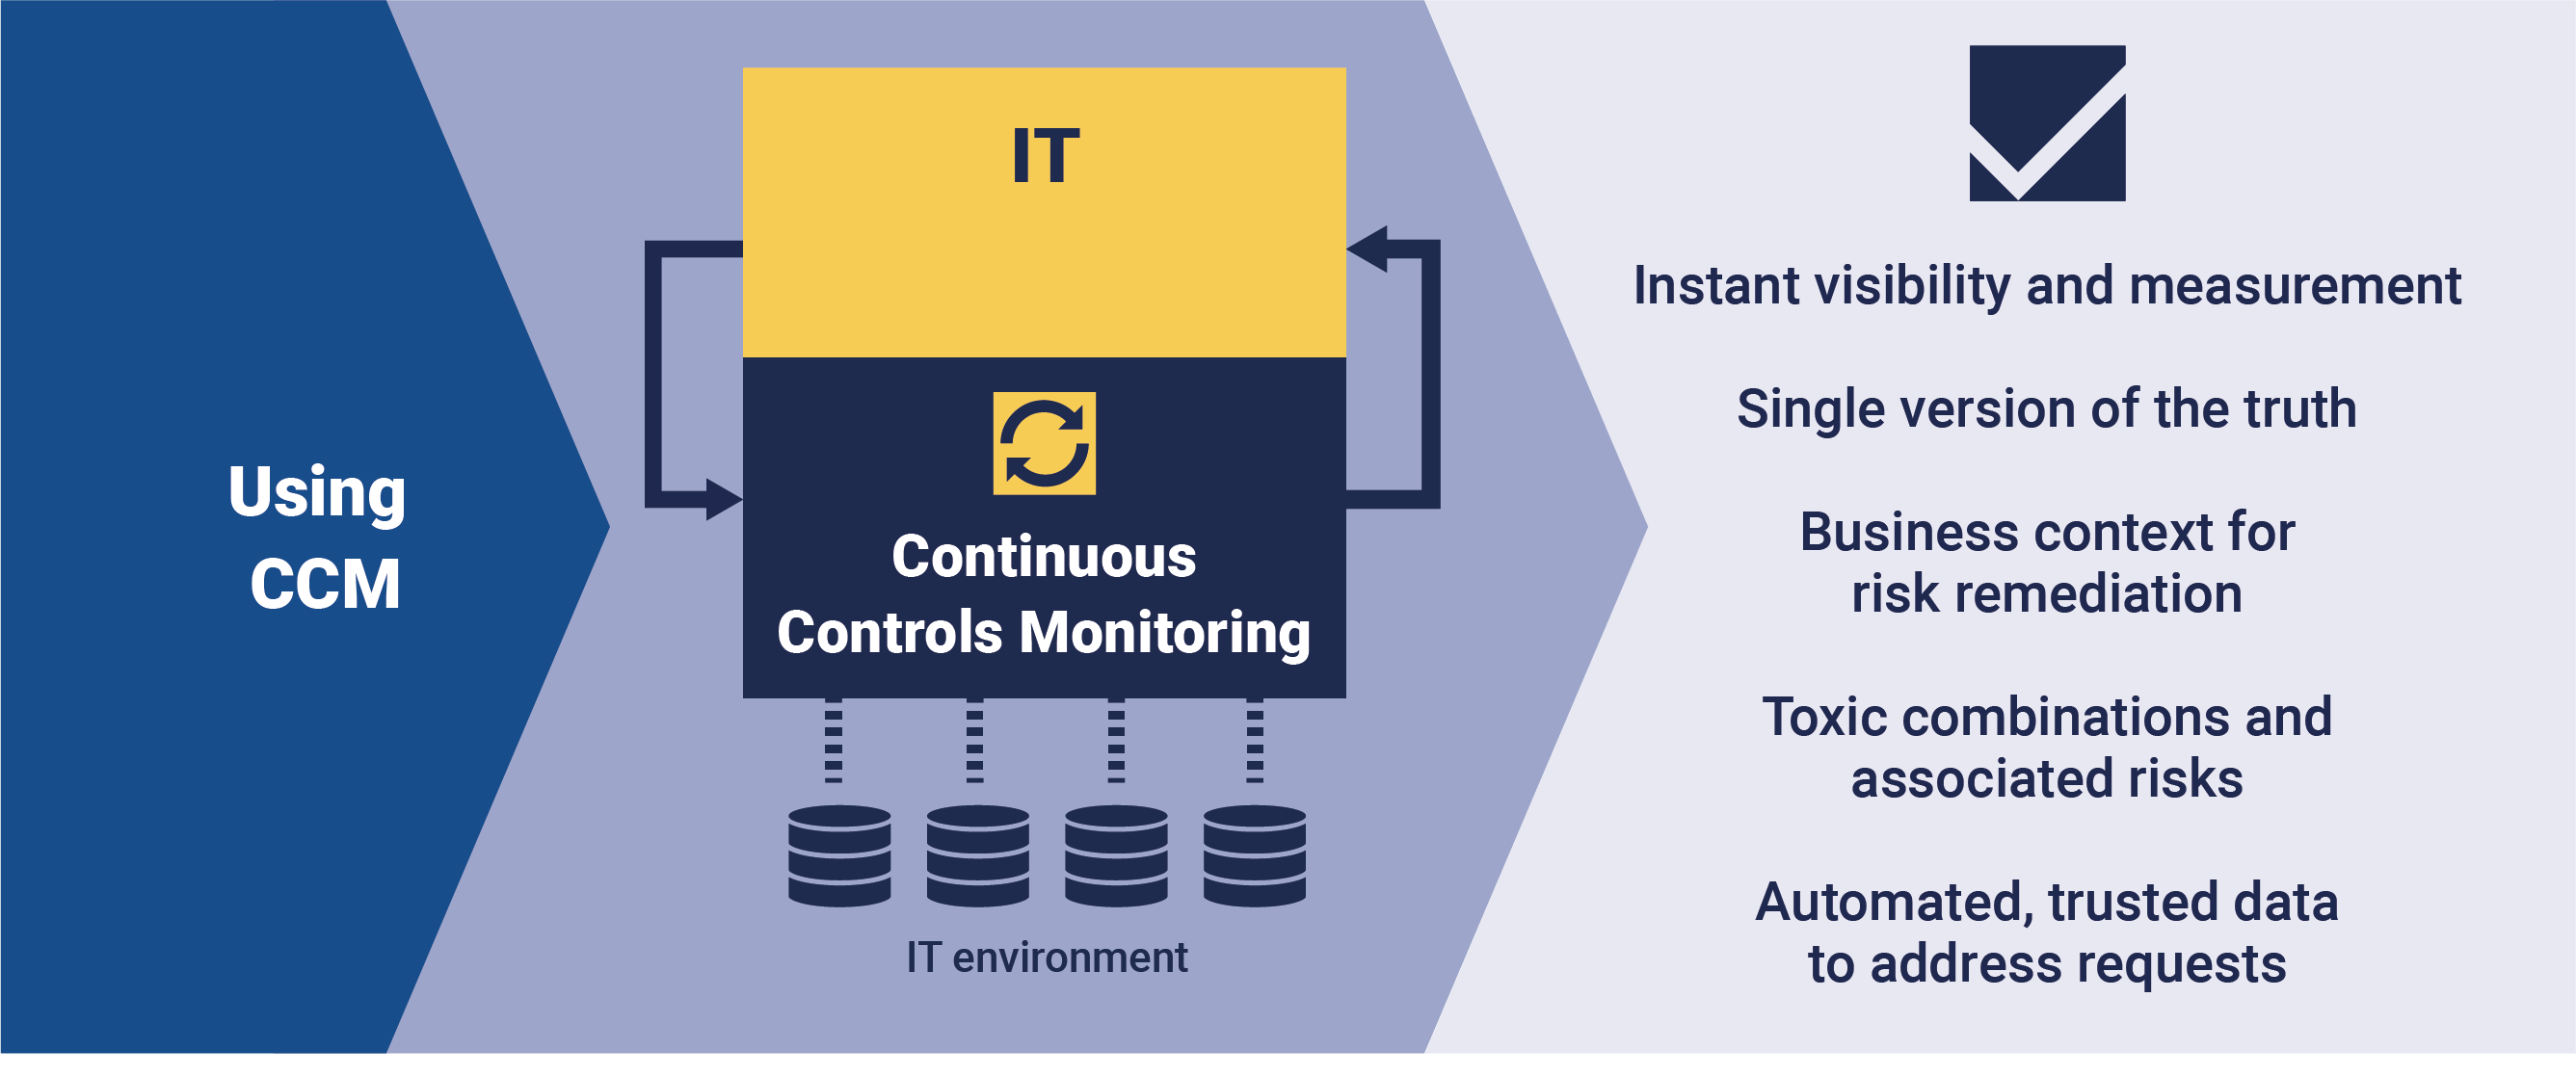 How does Continuous Controls Monitoring work?